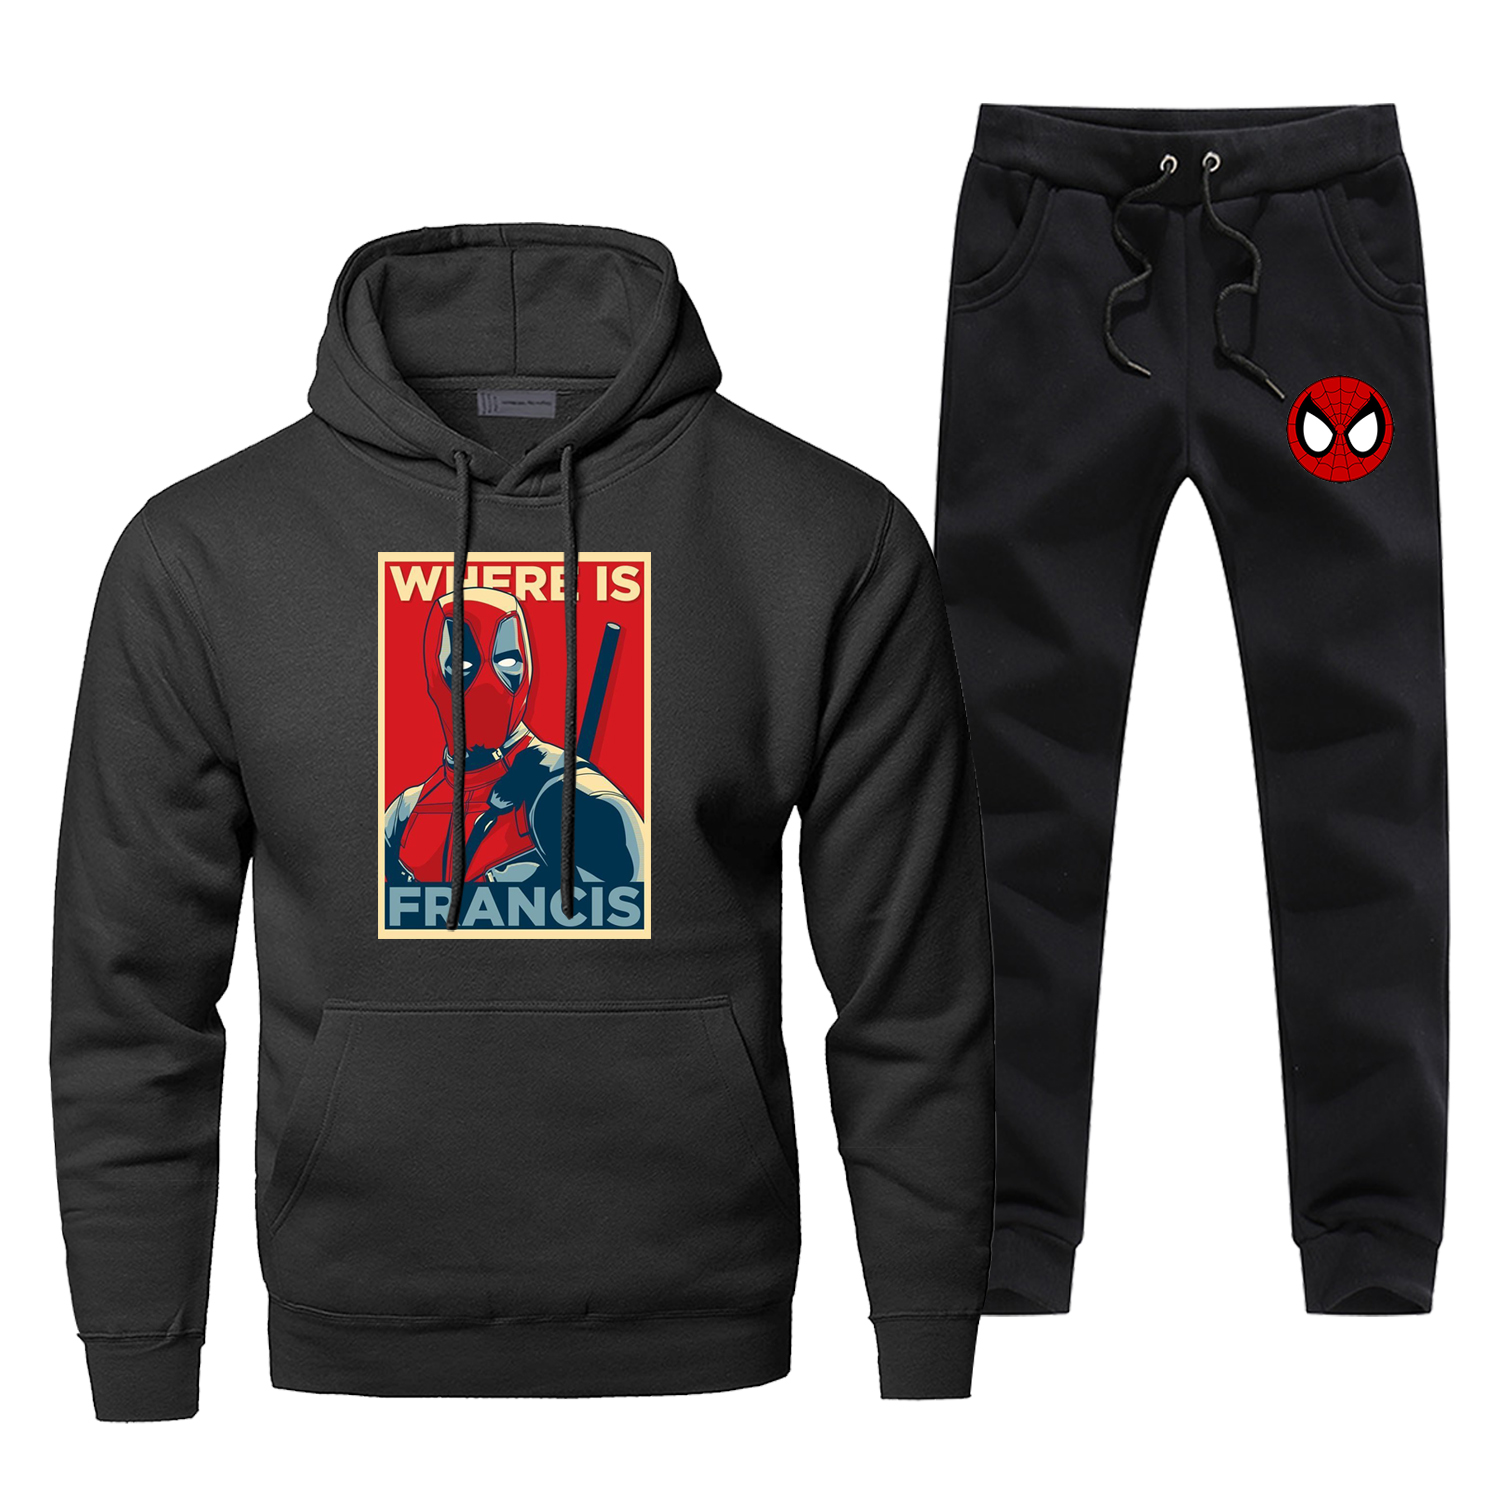 Marvel Anti-hero Deadpool Sweatshirt Funny Hoodies+pants 2 Piece Sets Men Fashion Warm Sweatshirt Hip Hop Streetwear Sportswear